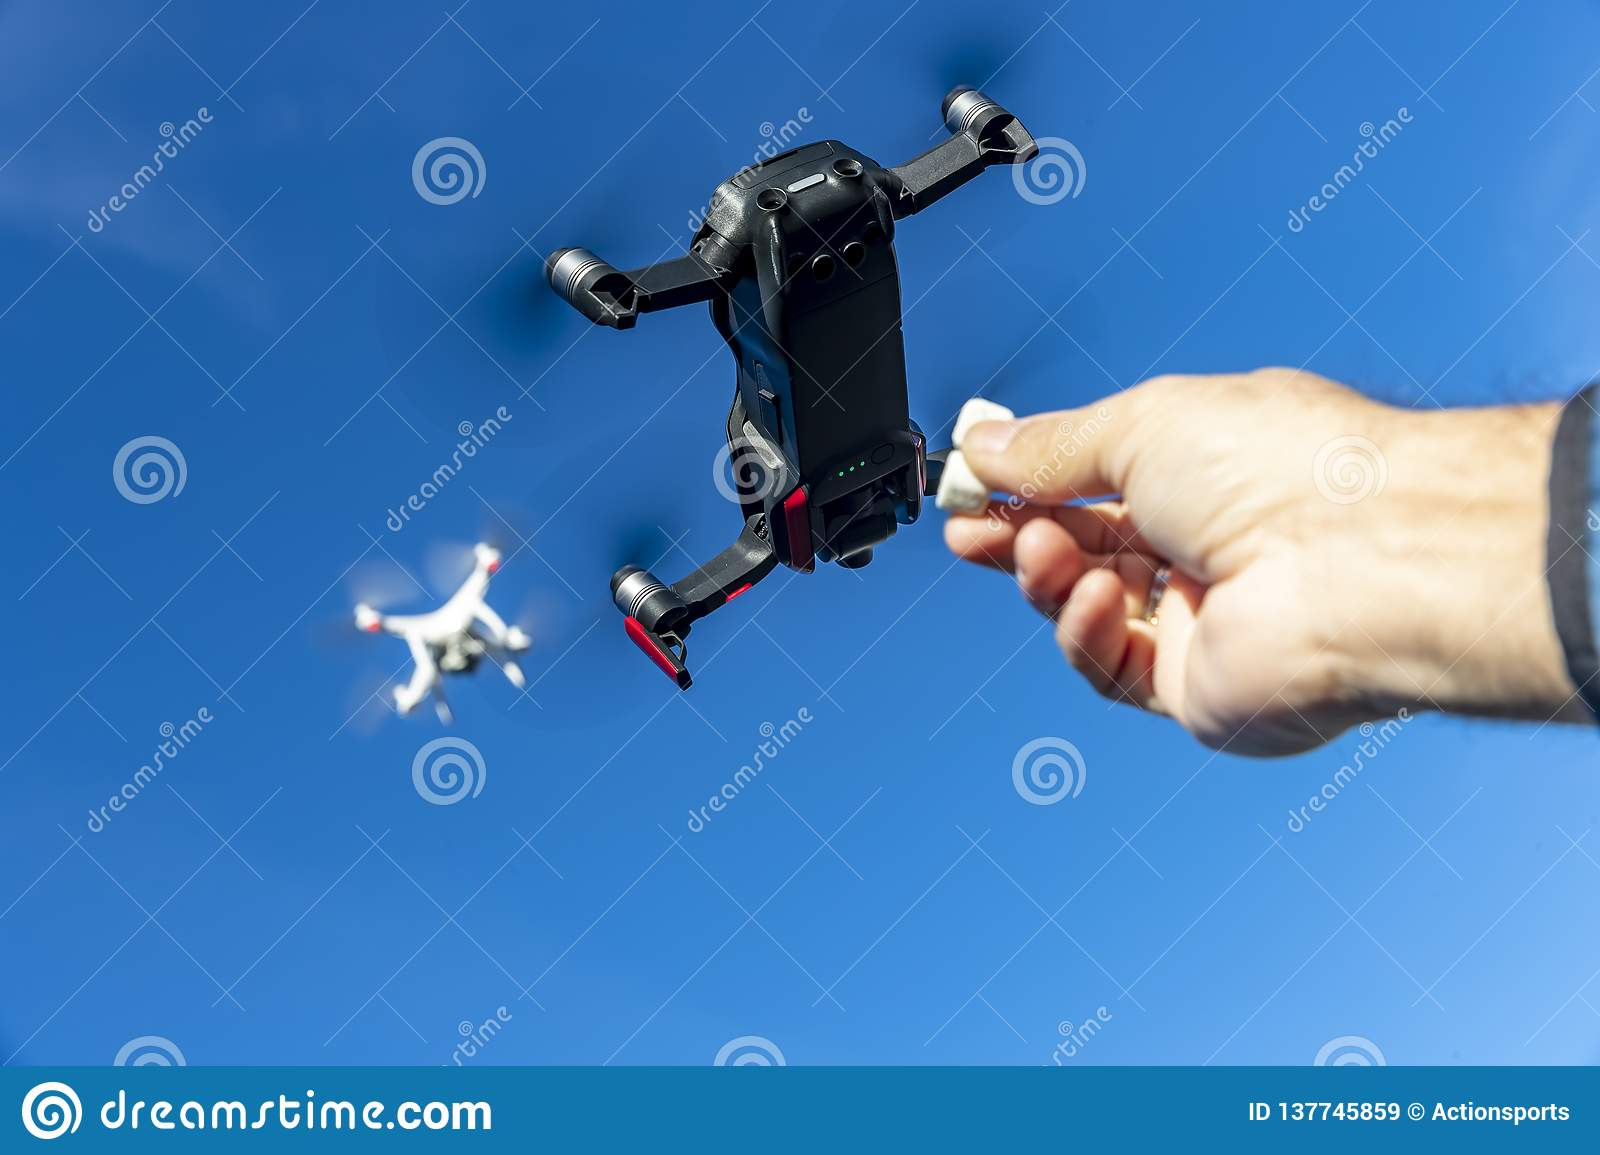 A Group Of Multiple Drones Fly Together Through The Air Against A Blue Sky Waiting To Be Fed